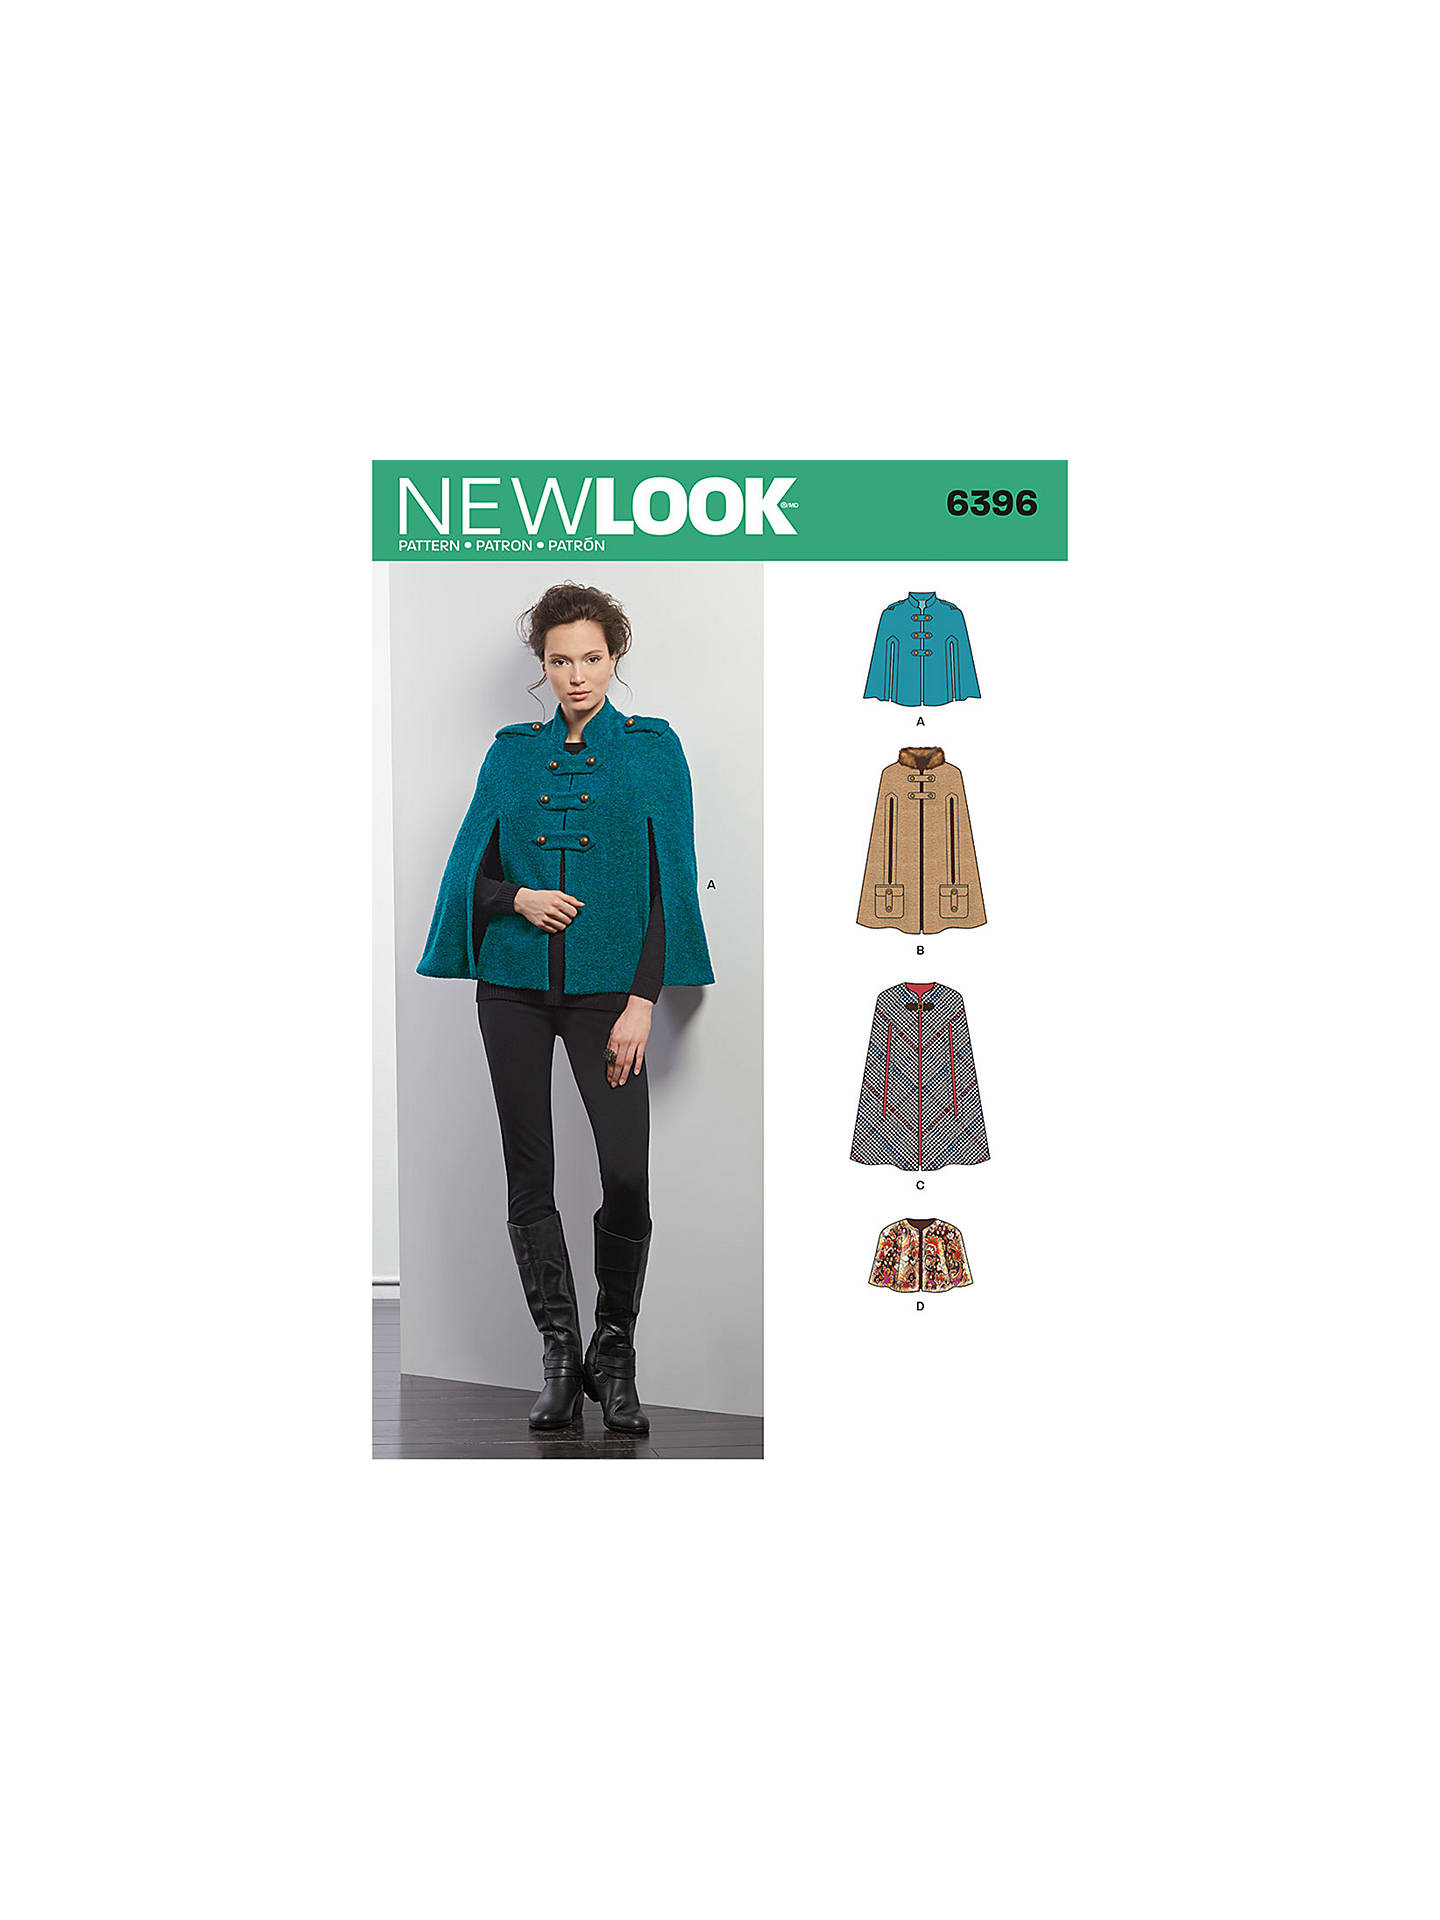 New Look Women's Cape Jacket Sewing Pattern, 6396 at John